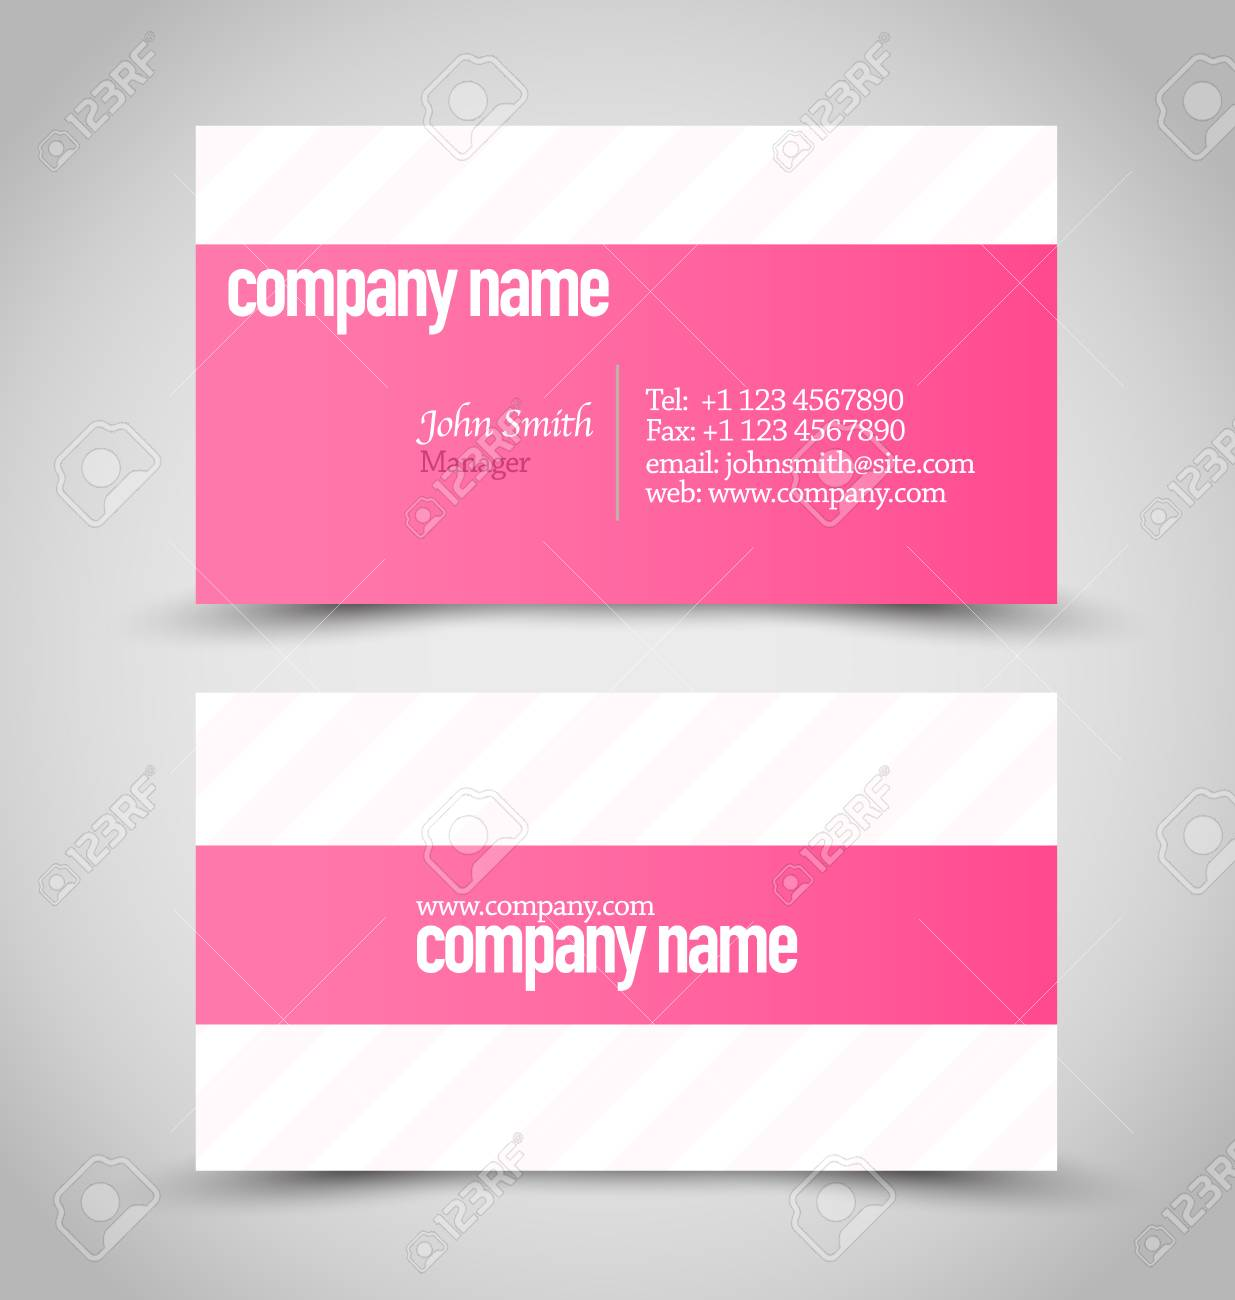 Business card set template pink and white color vector business card set template pink and white color vector illustration stock vector reheart Choice Image